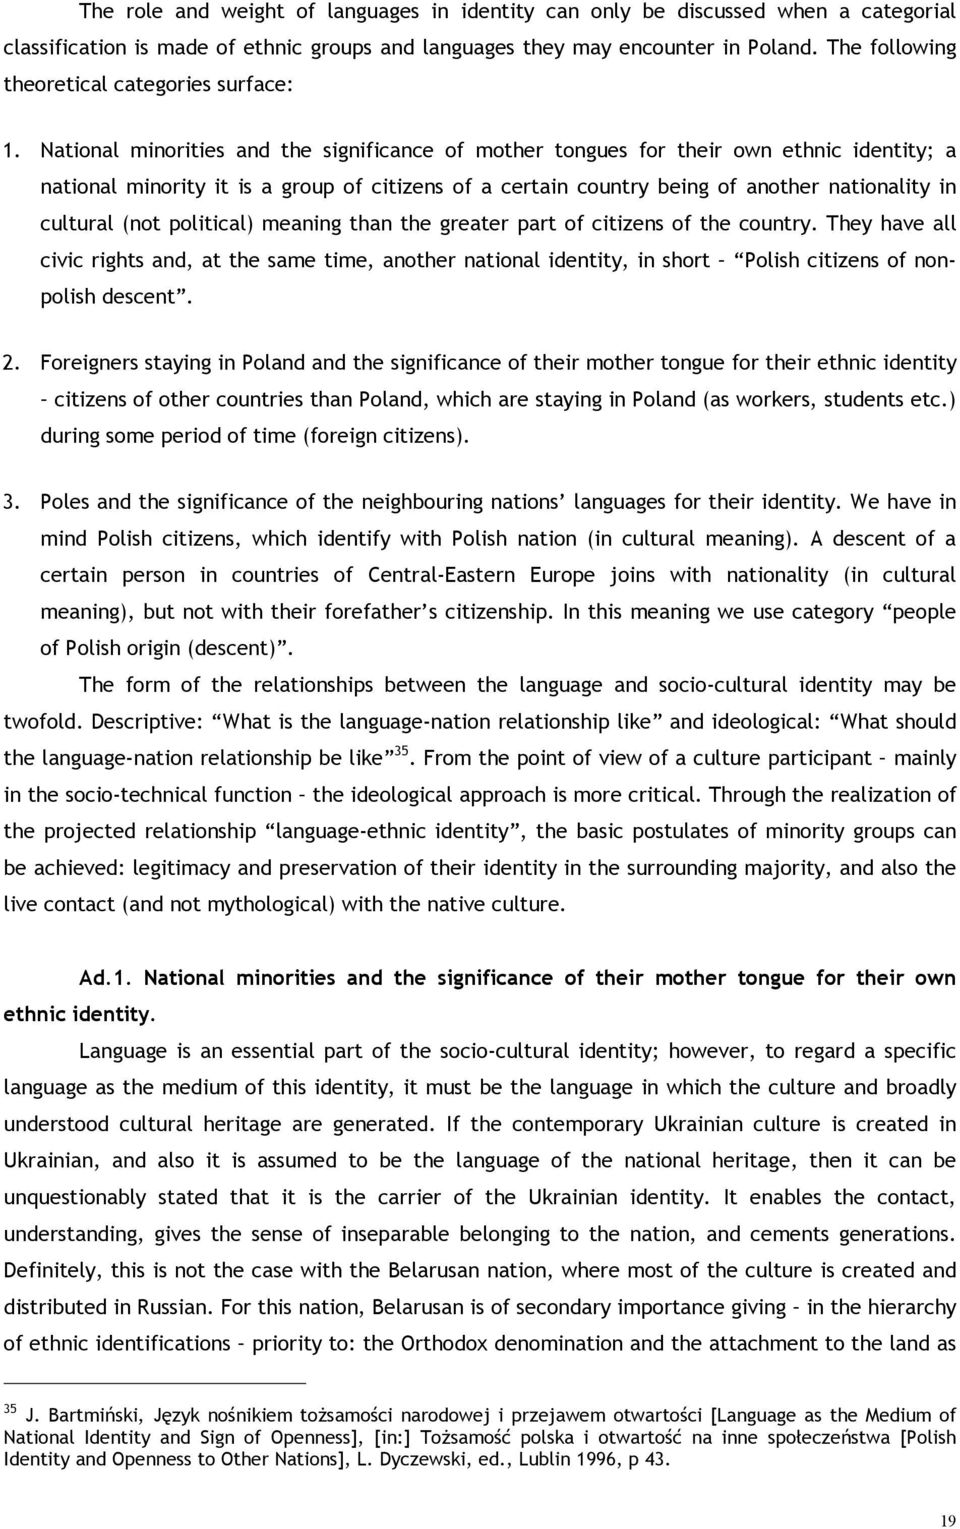 National minorities and the significance of mother tongues for their own ethnic identity; a national minority it is a group of citizens of a certain country being of another nationality in cultural